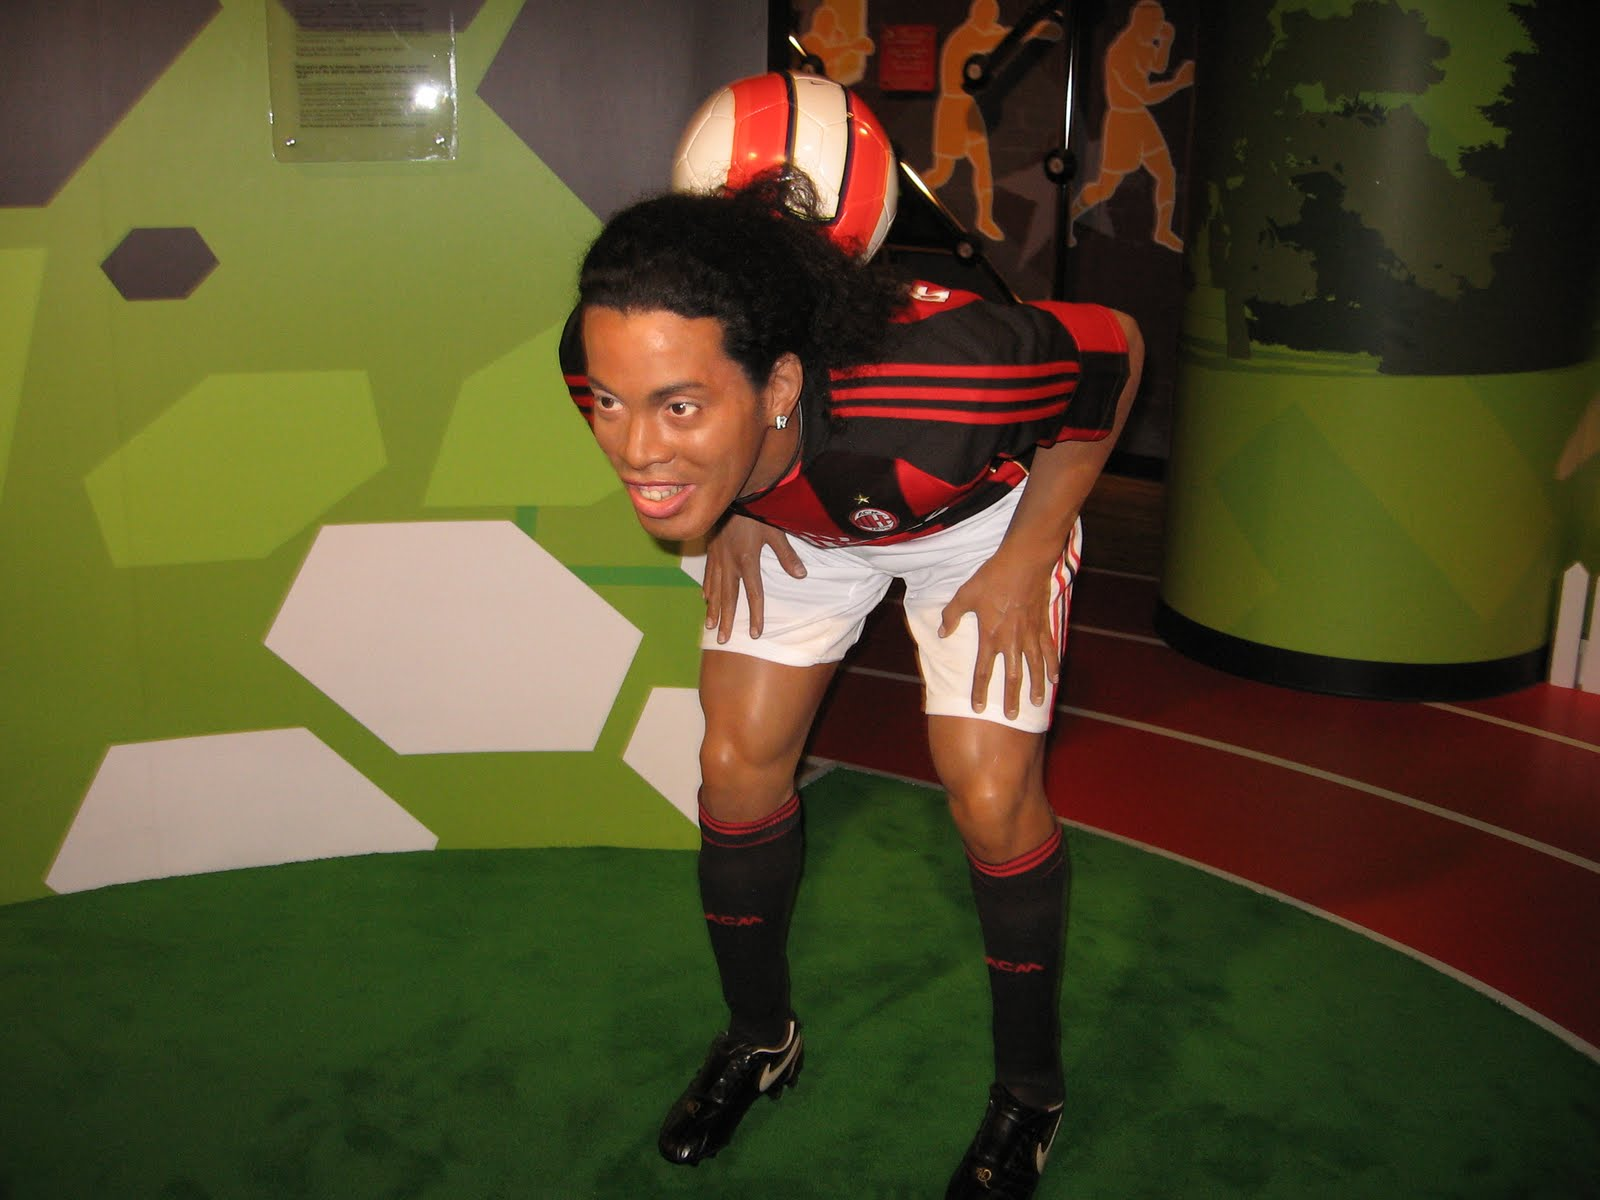 Ronaldo De Assis Moreira - Photo Set